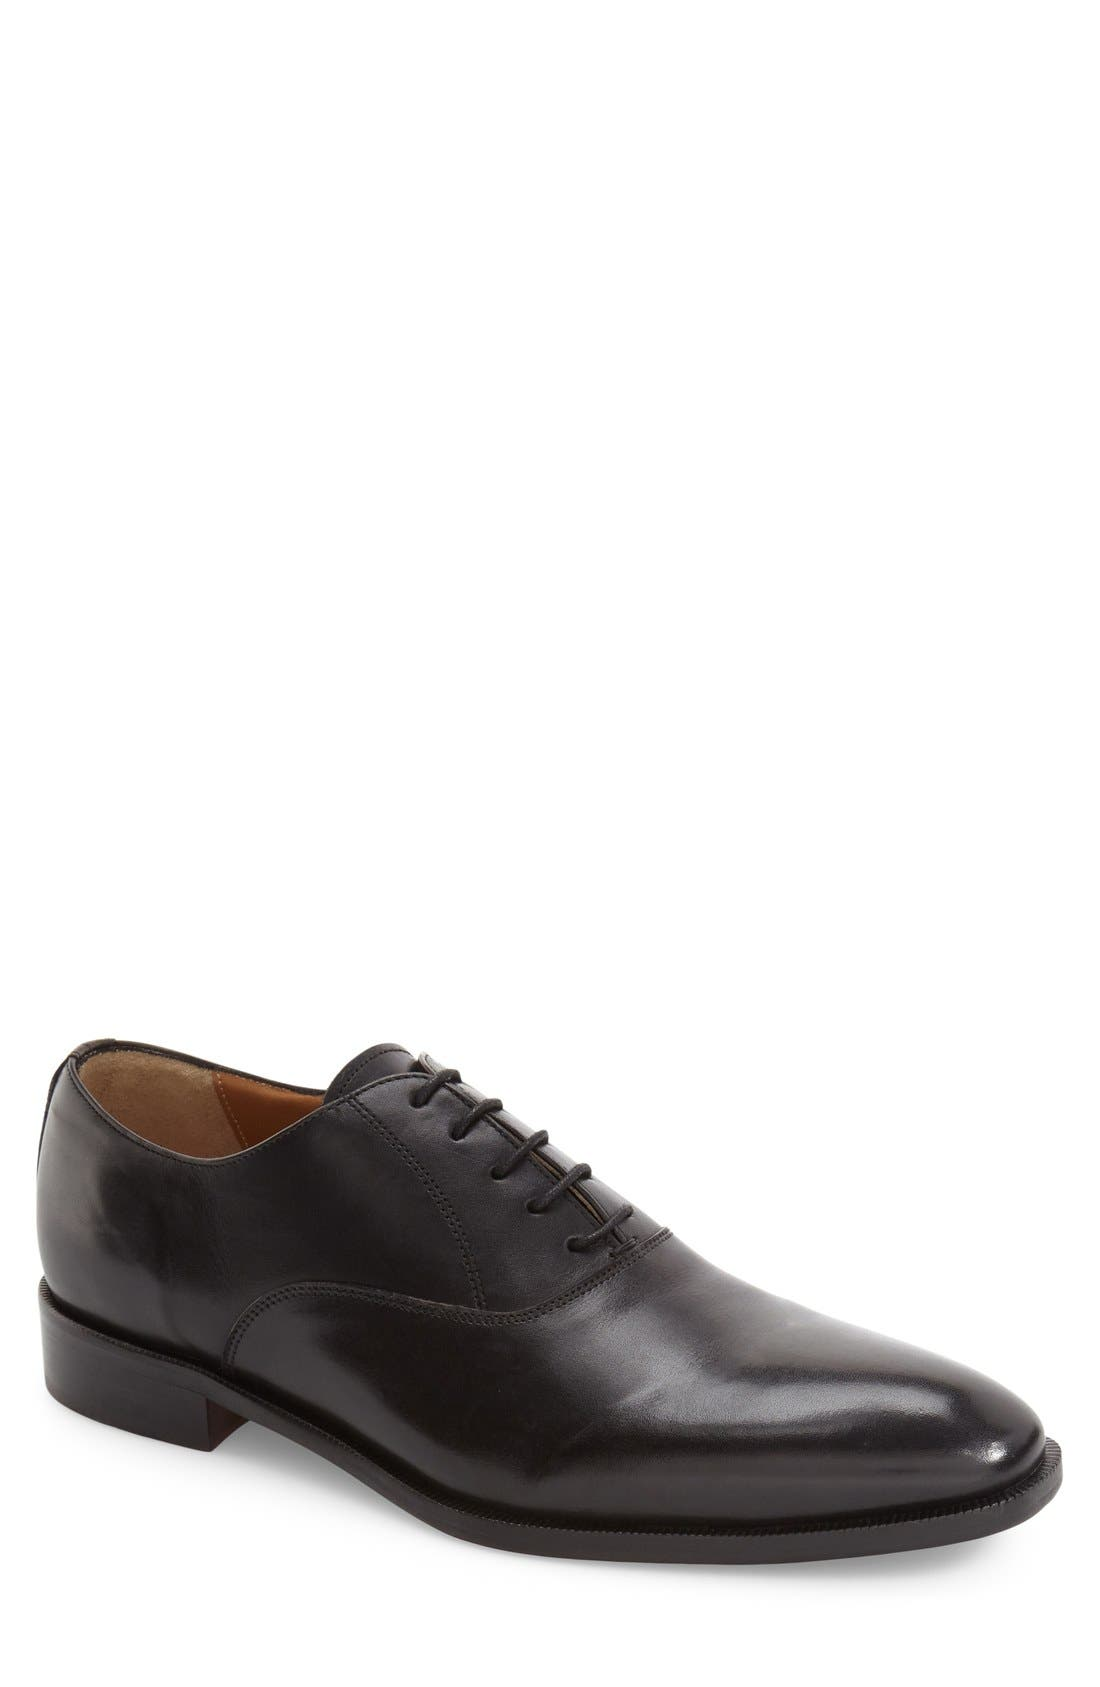 Kenneth Cole New York Top Coat Plain Toe Oxford (Men)